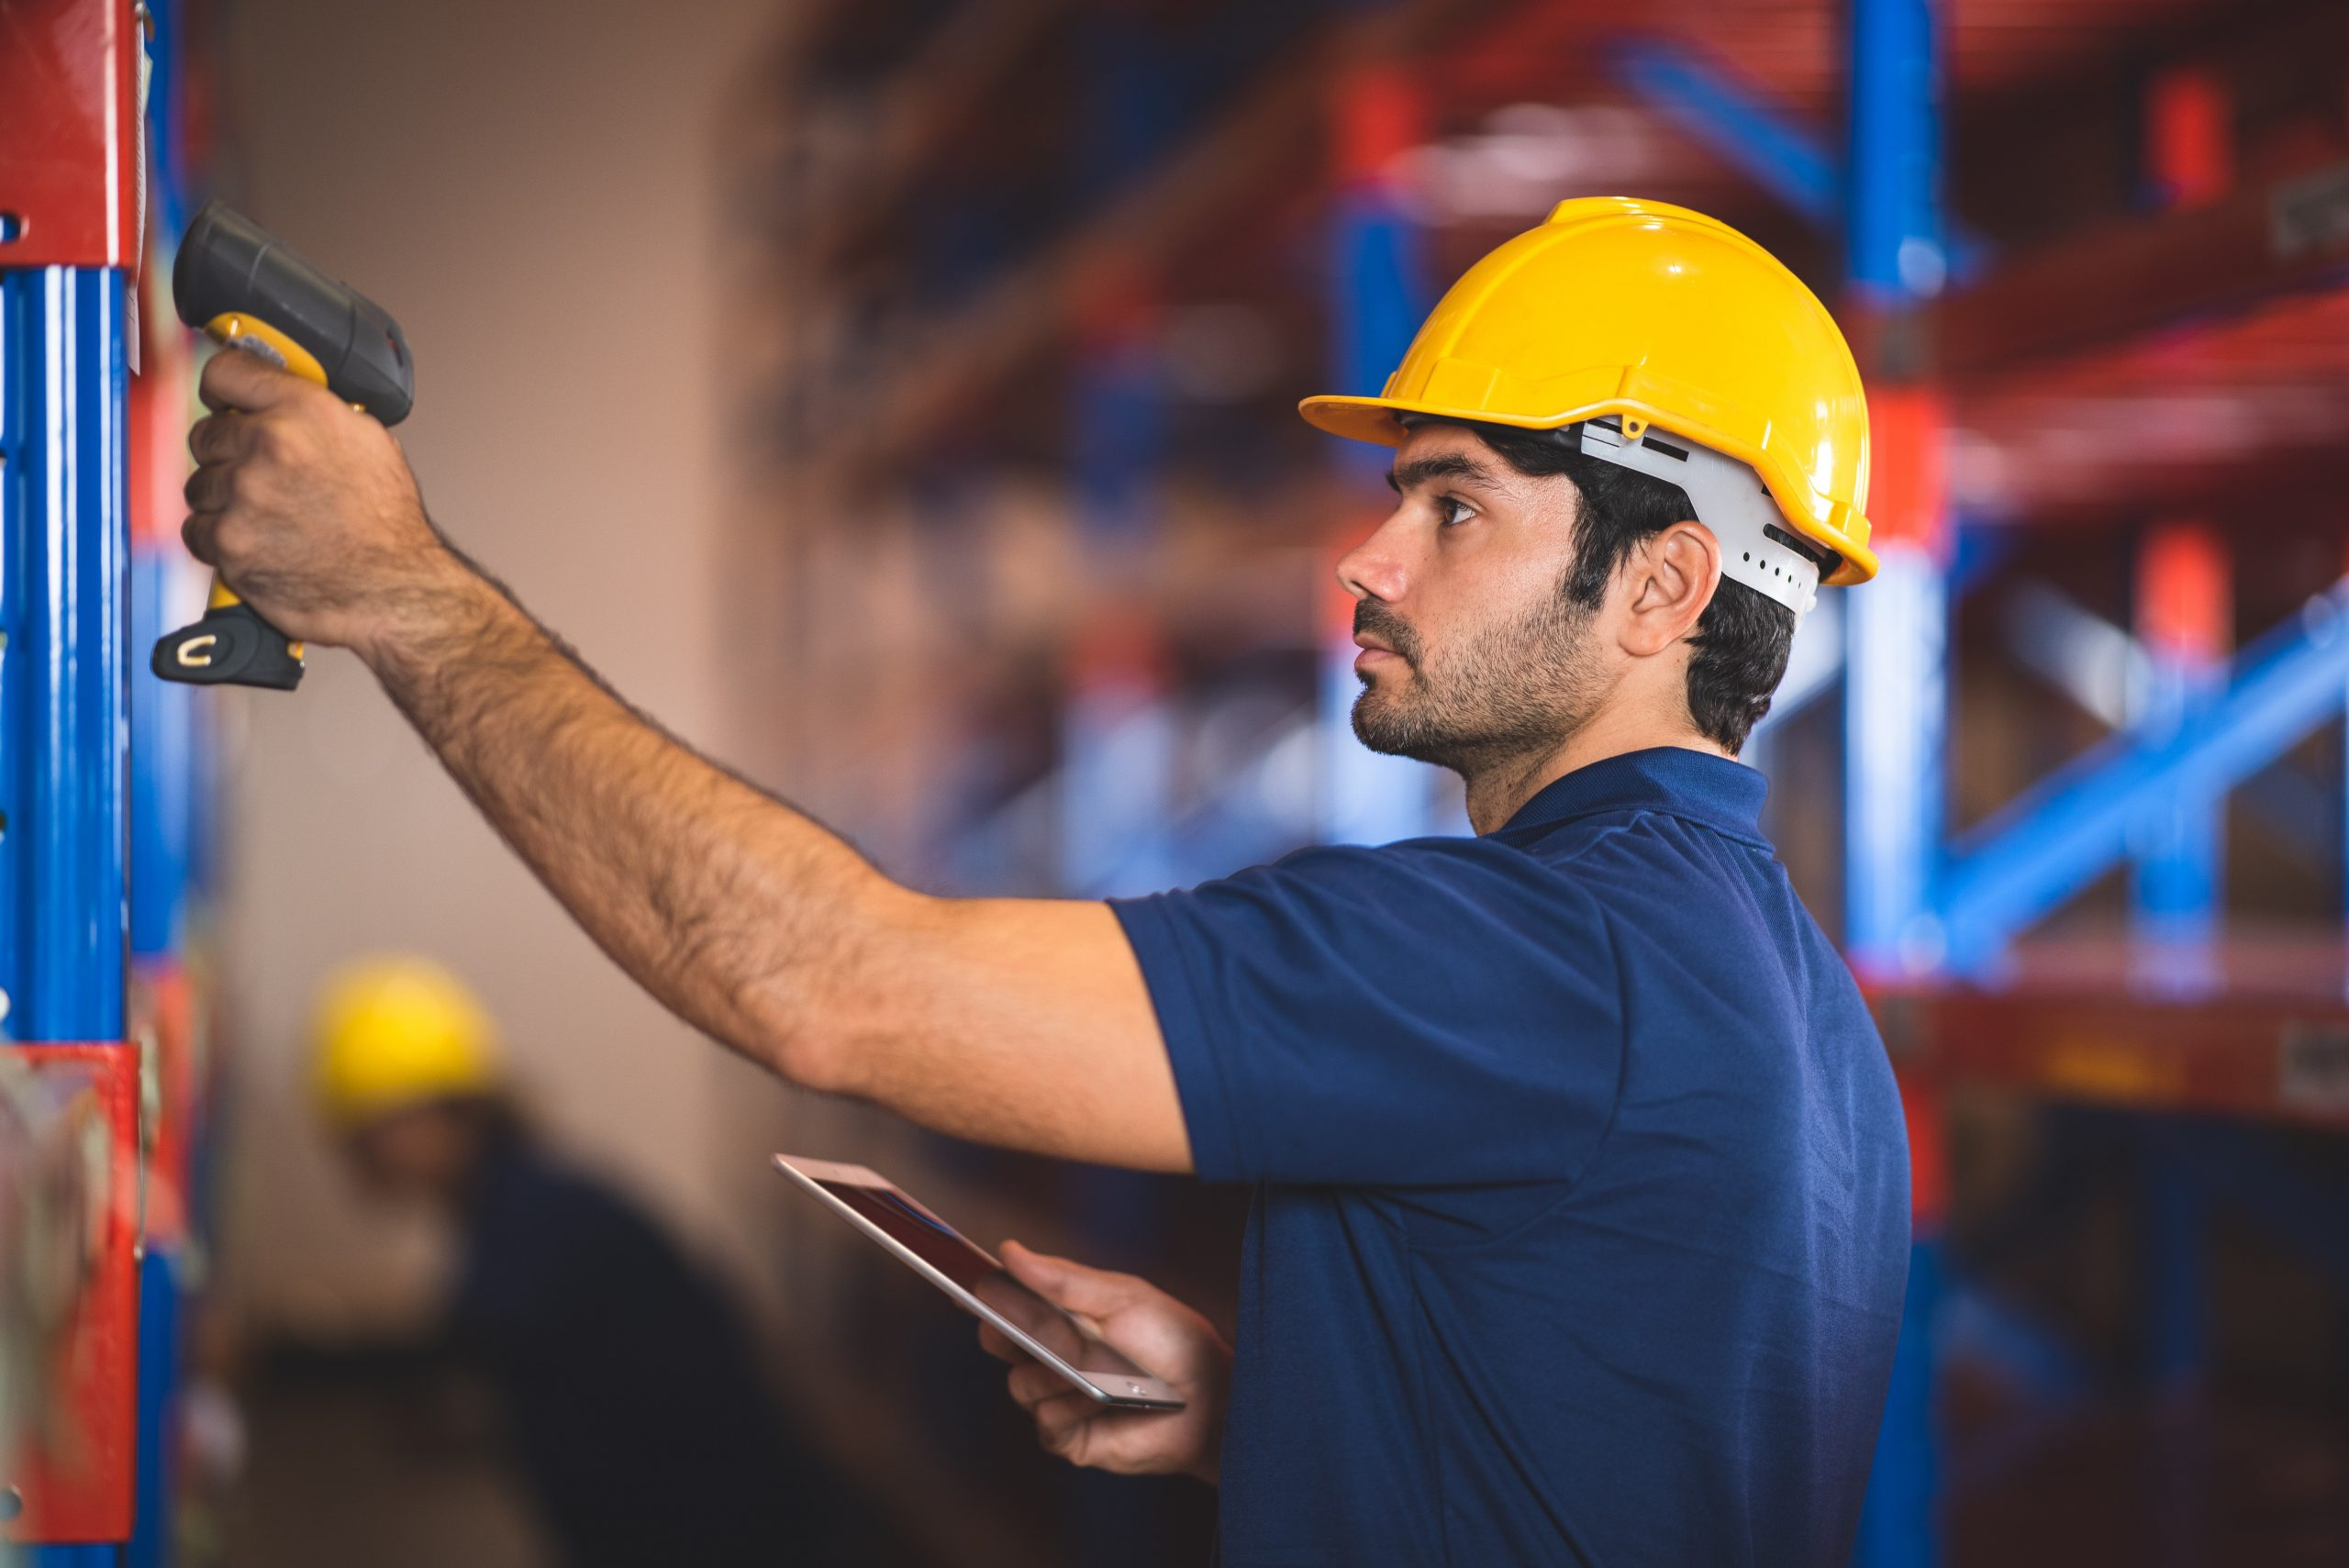 Benefits of Using AI in Supply Chain Management